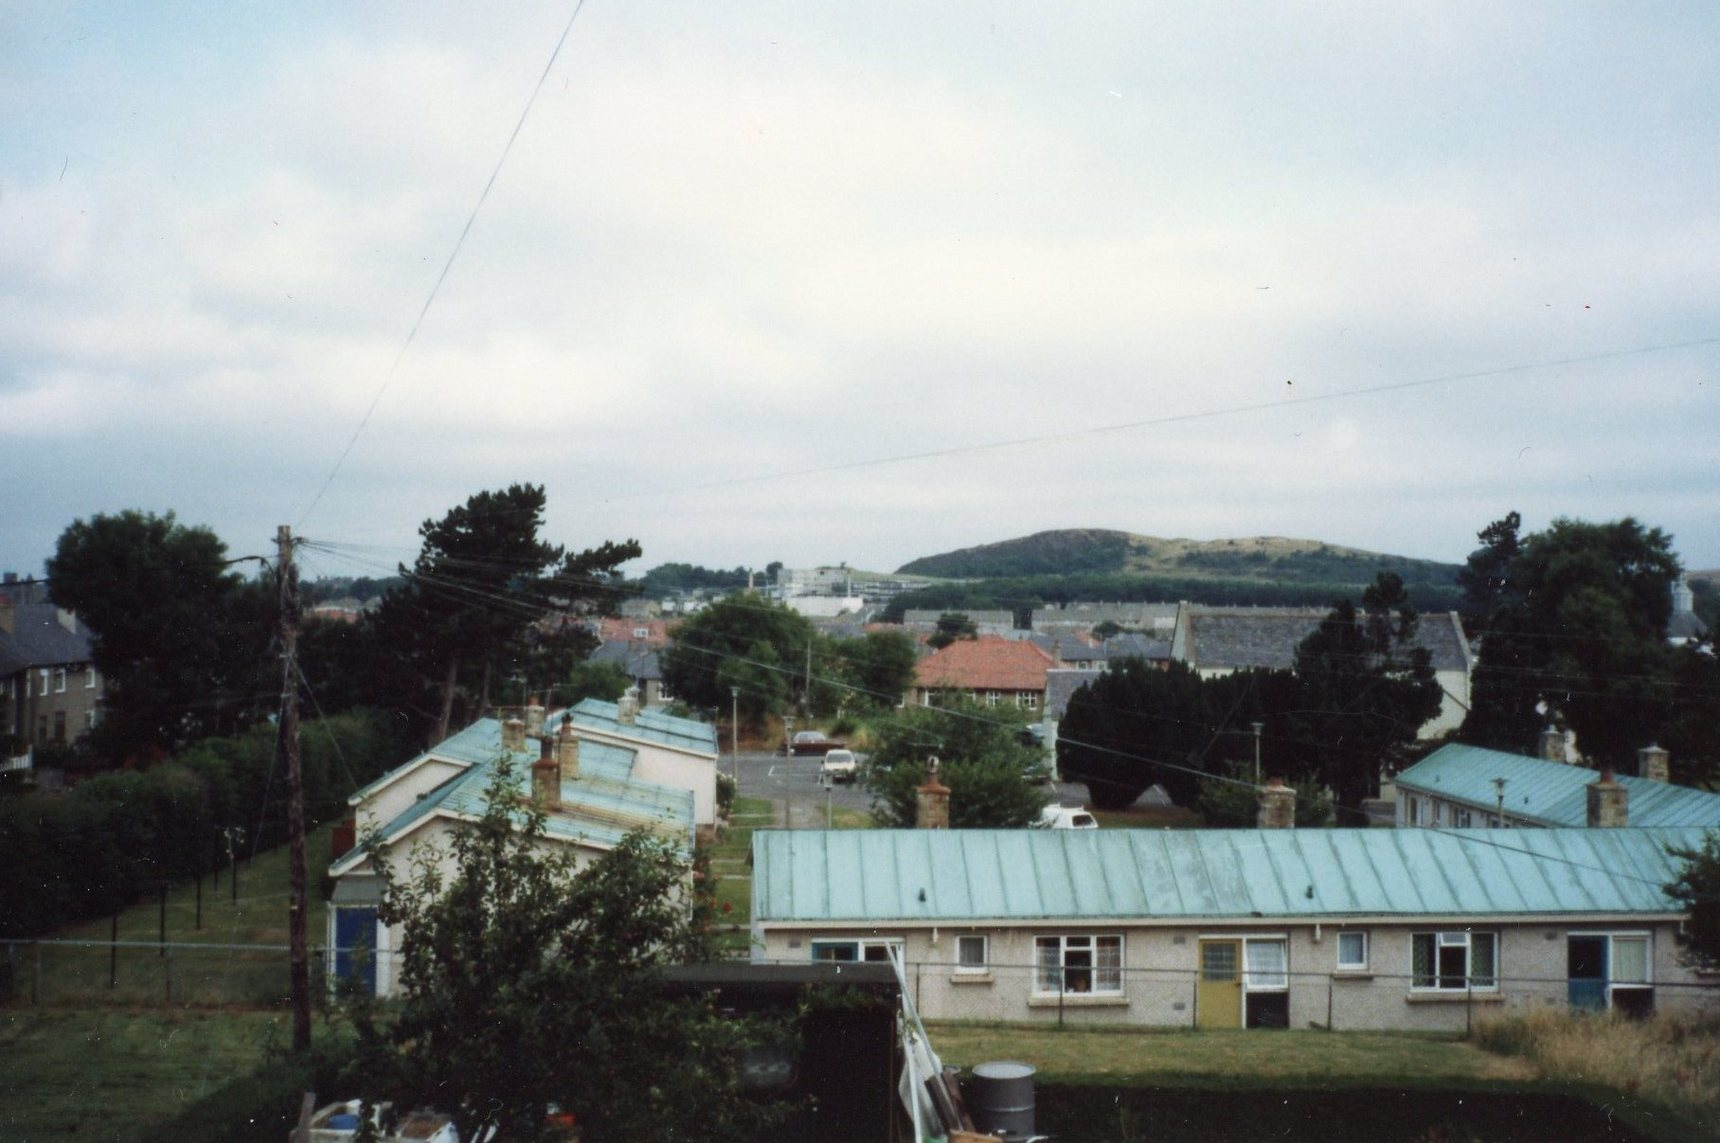 Prefab housing at Oxgangs